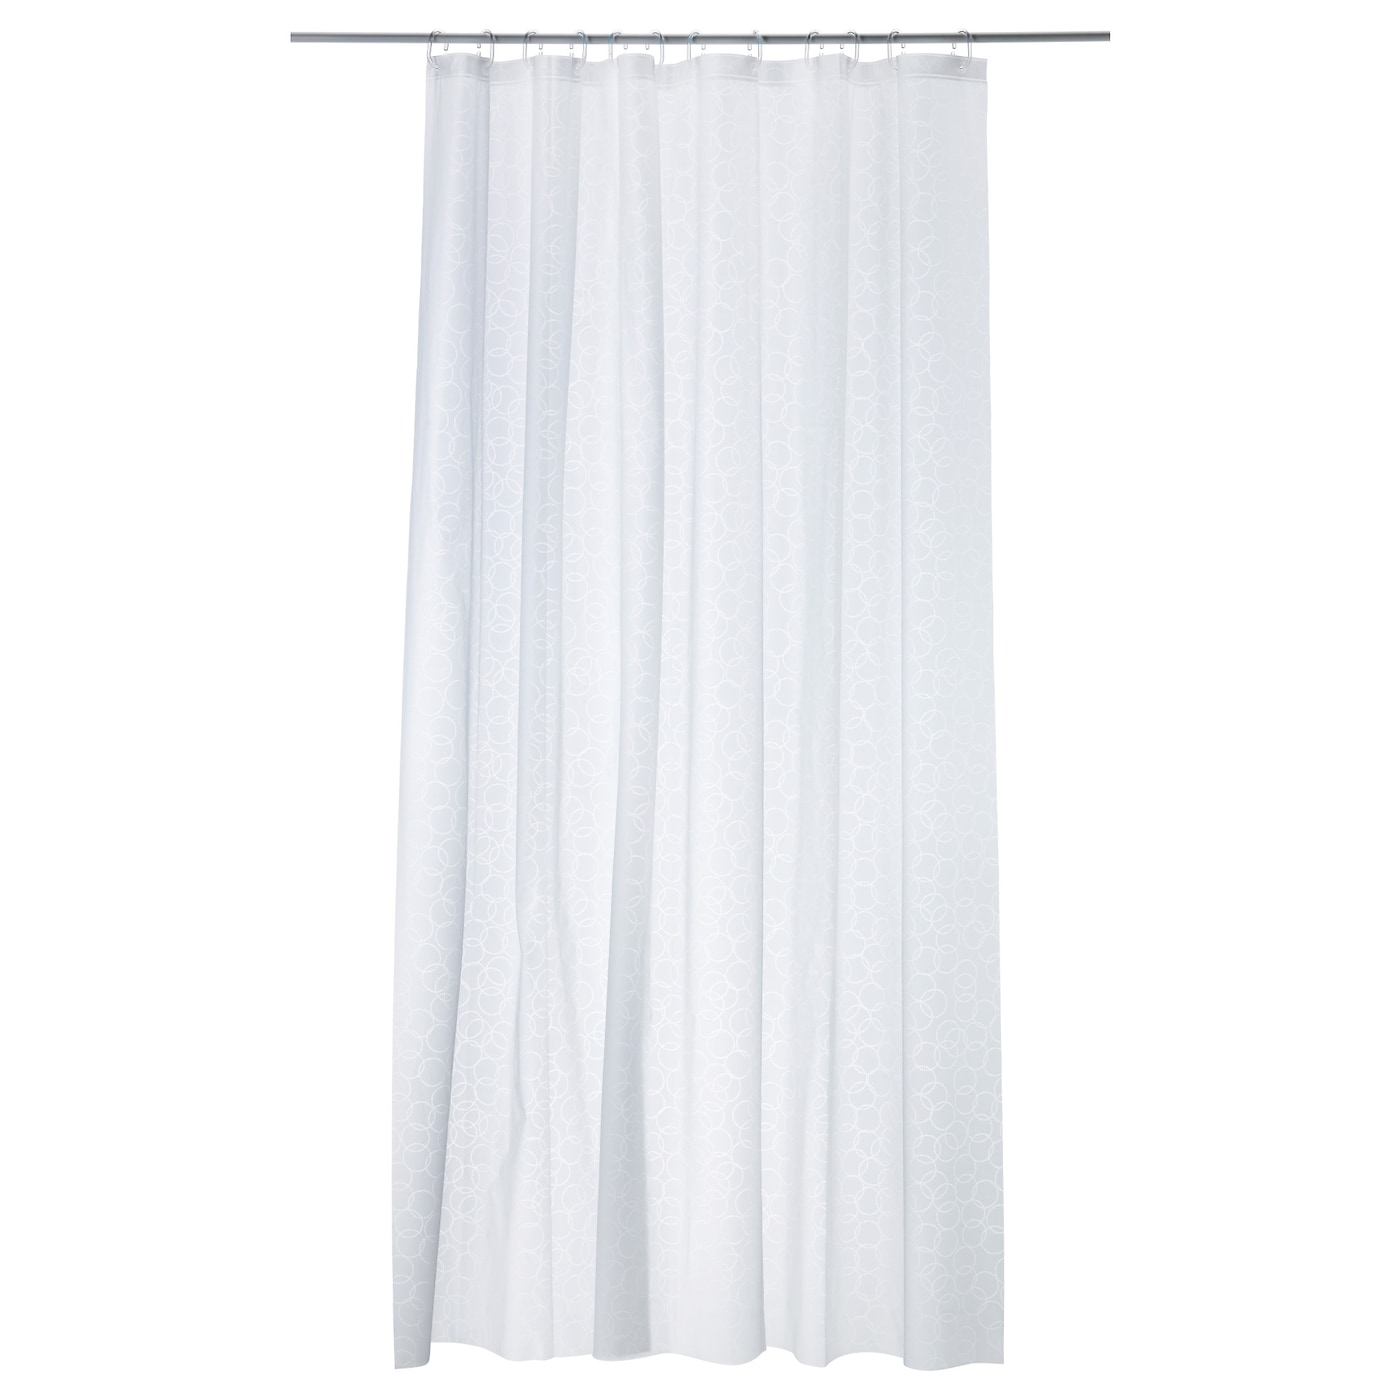 IKEA INNAREN Shower Curtain Can Be Easily Cut To The Desired Length Zoom In